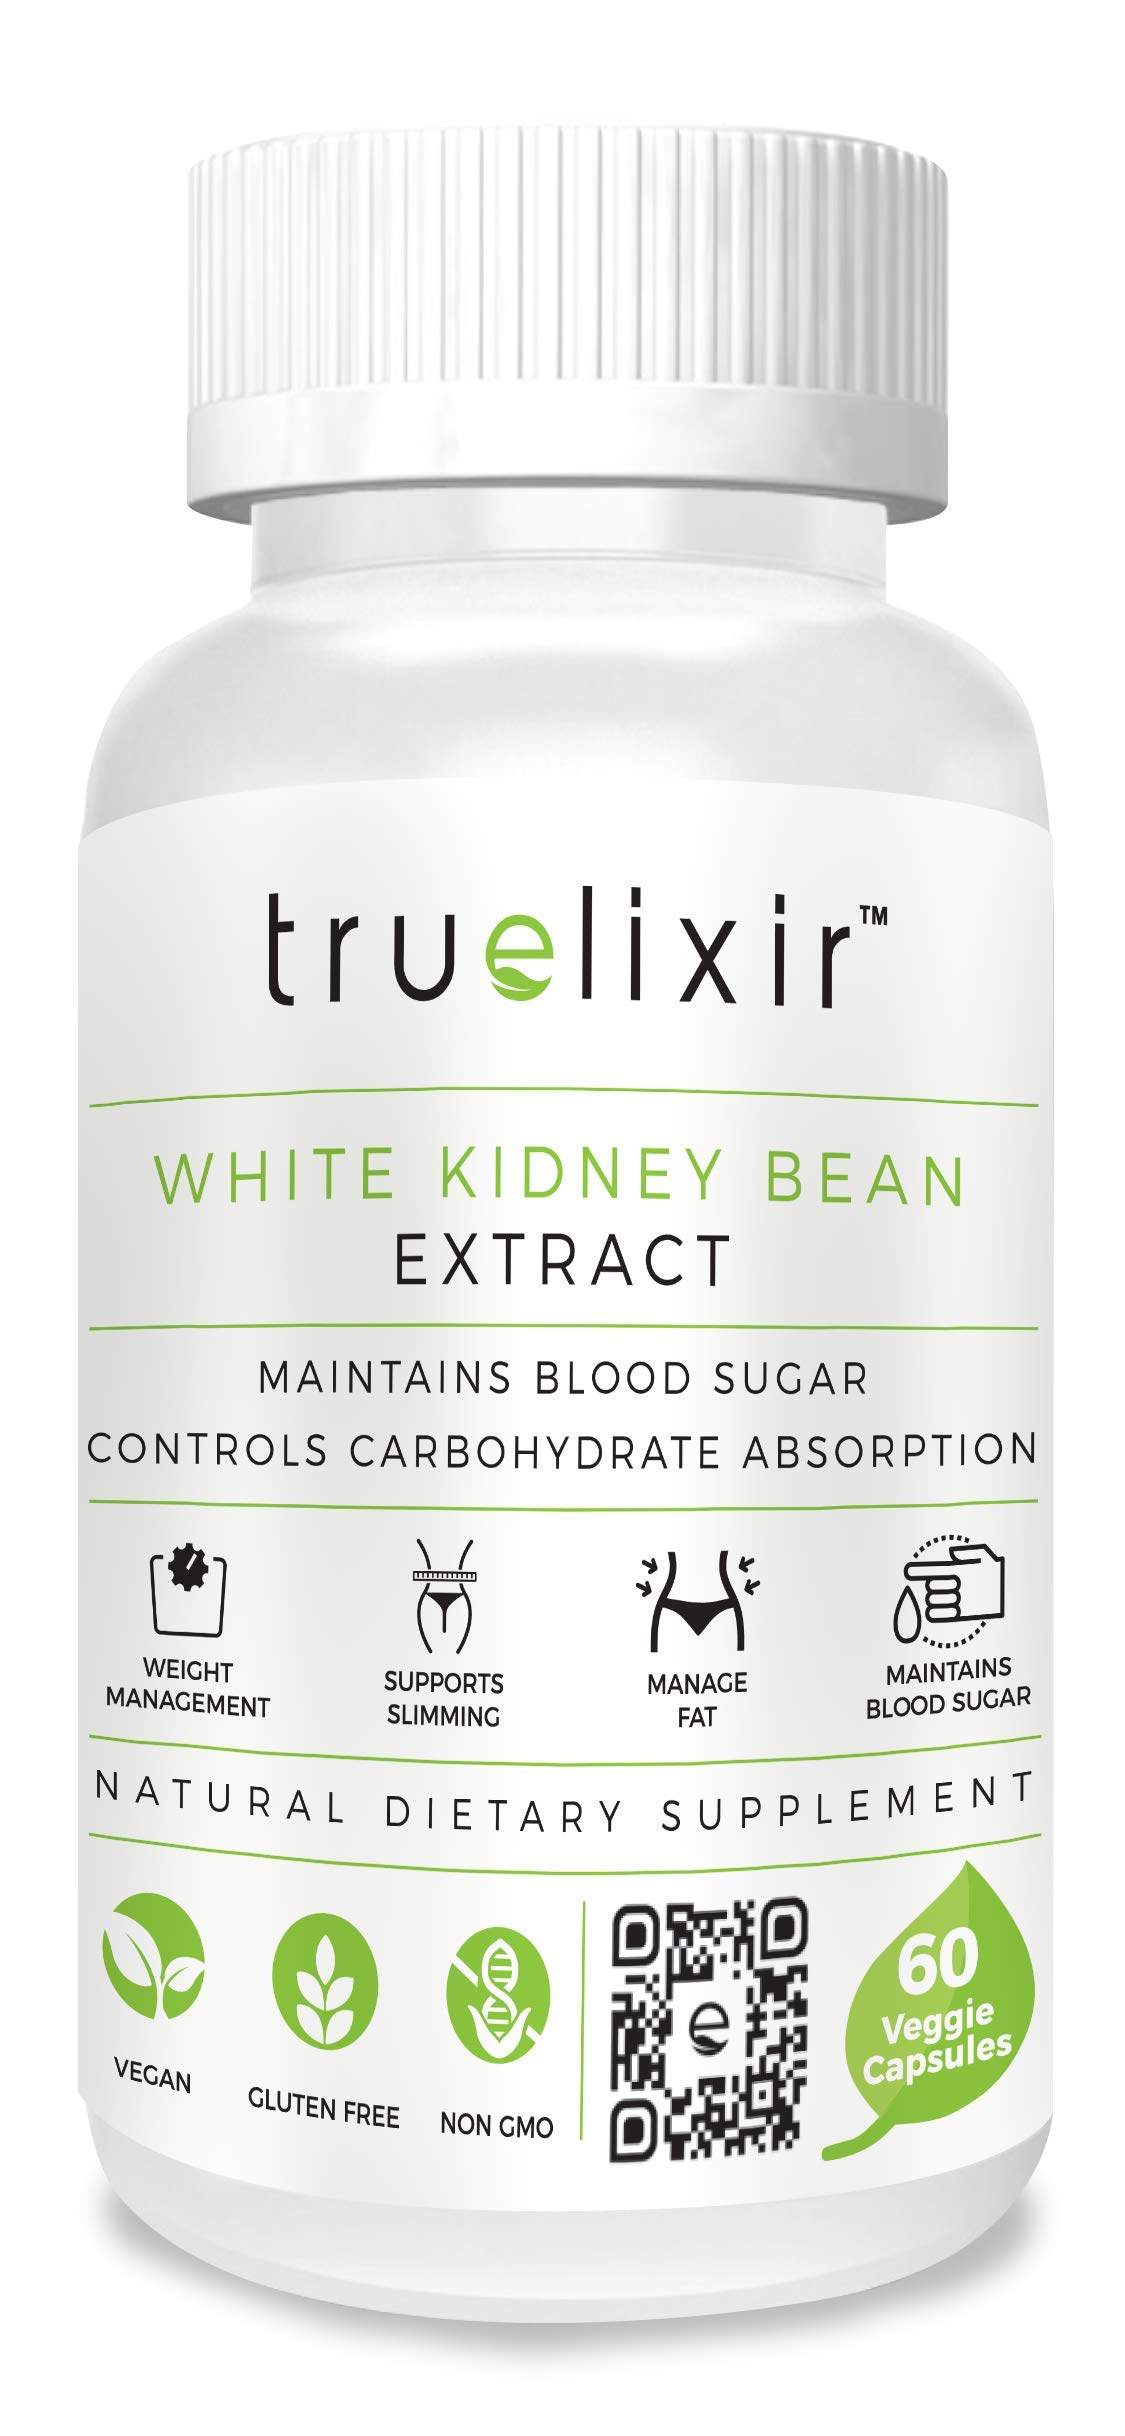 TRUELIXIR Vegan White Kidney Bean Extract 90%, All Natural, 60 Veggie CAPS (HPMC), Non-GMO, ALLERGEN Free, Gluten Free, NO Carriers, NO FILLERS, CARB Blocker, CARB Cutter